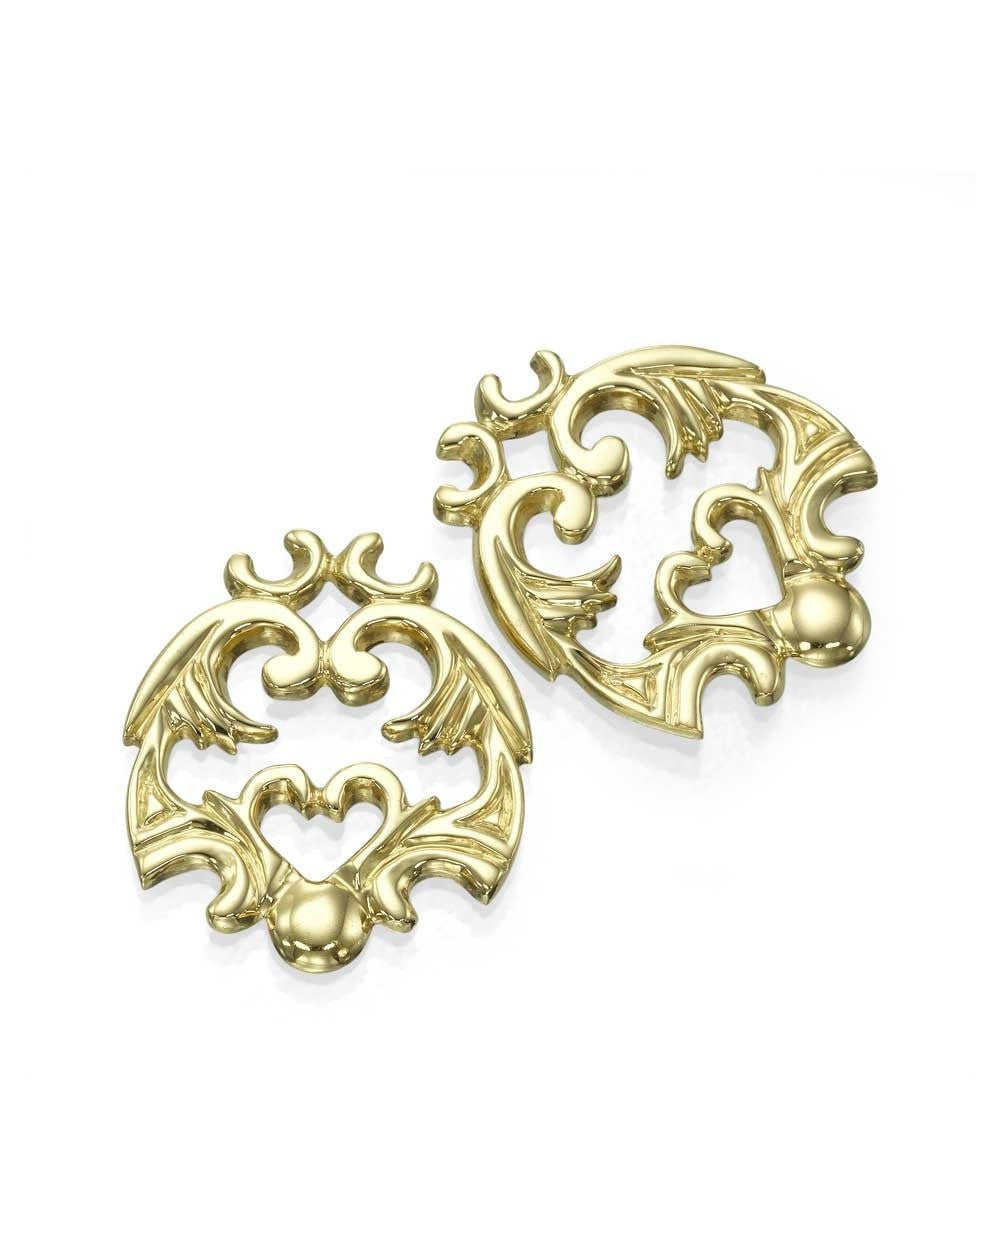 Earrings Yellow Gold 'Vault' Antique Filigree Designer Earrings